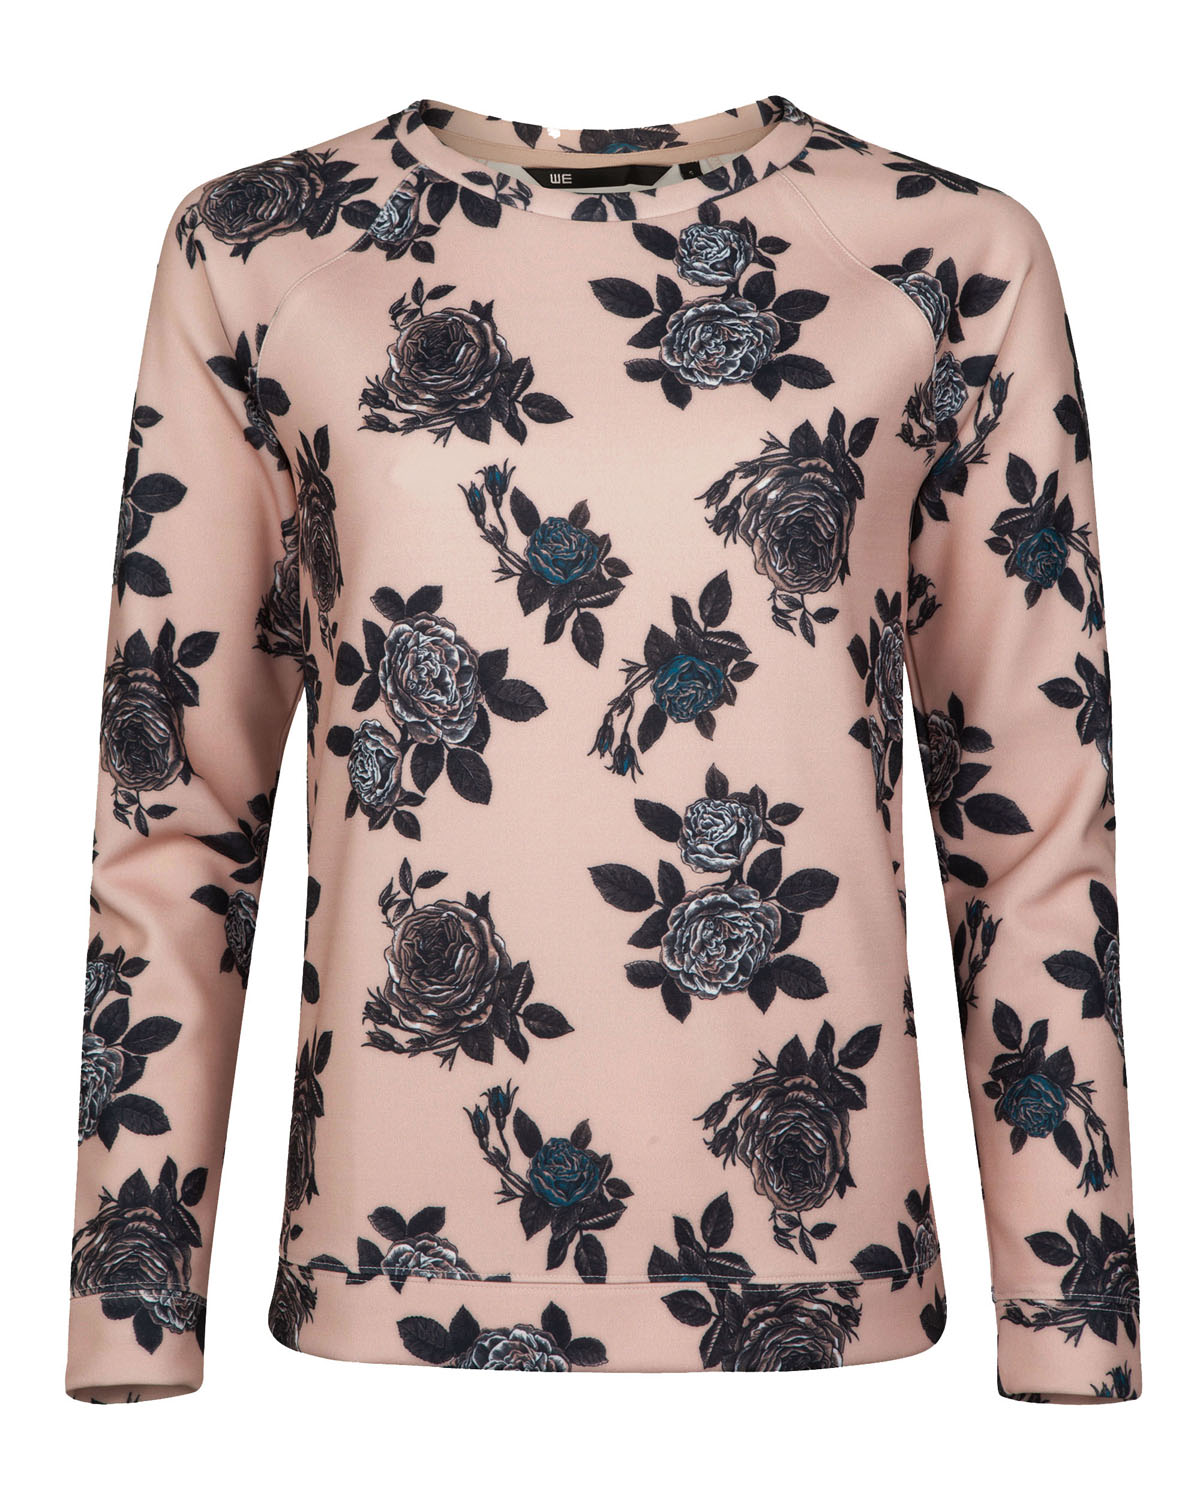 Dames Trui Met Print.Dames Flower Print Sweater 78906822 We Fashion